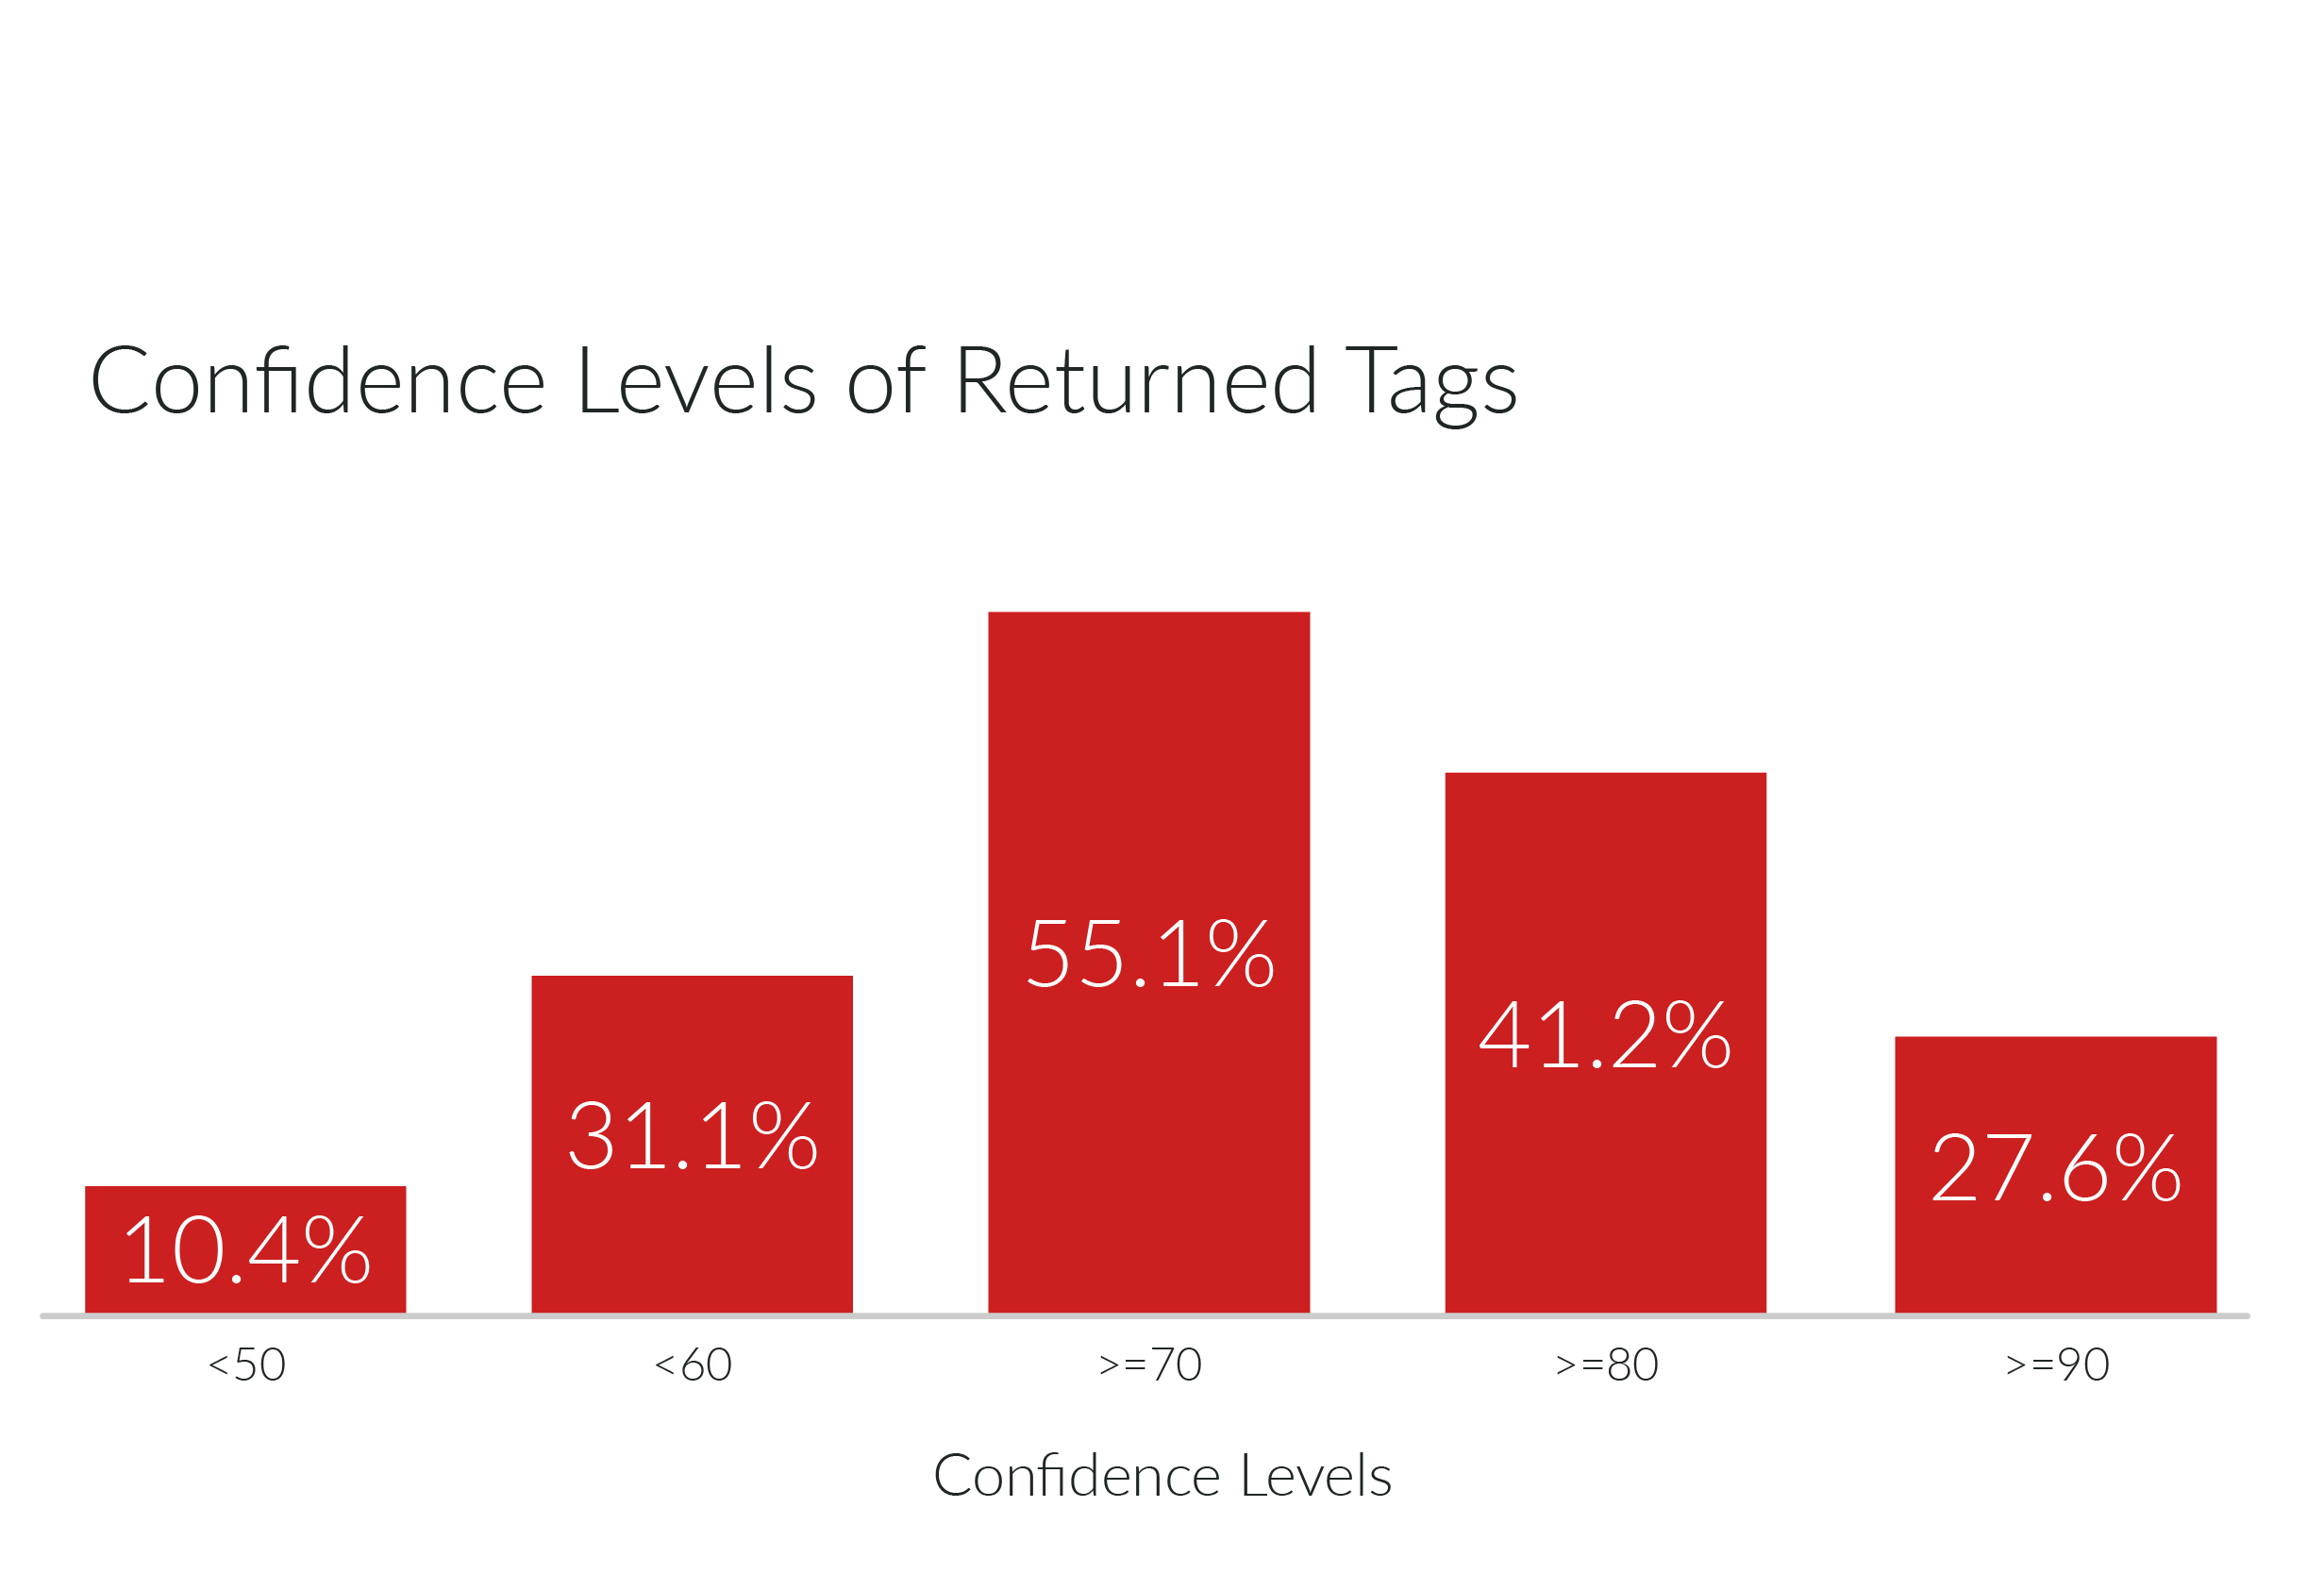 Confidence level scores of tags each engine